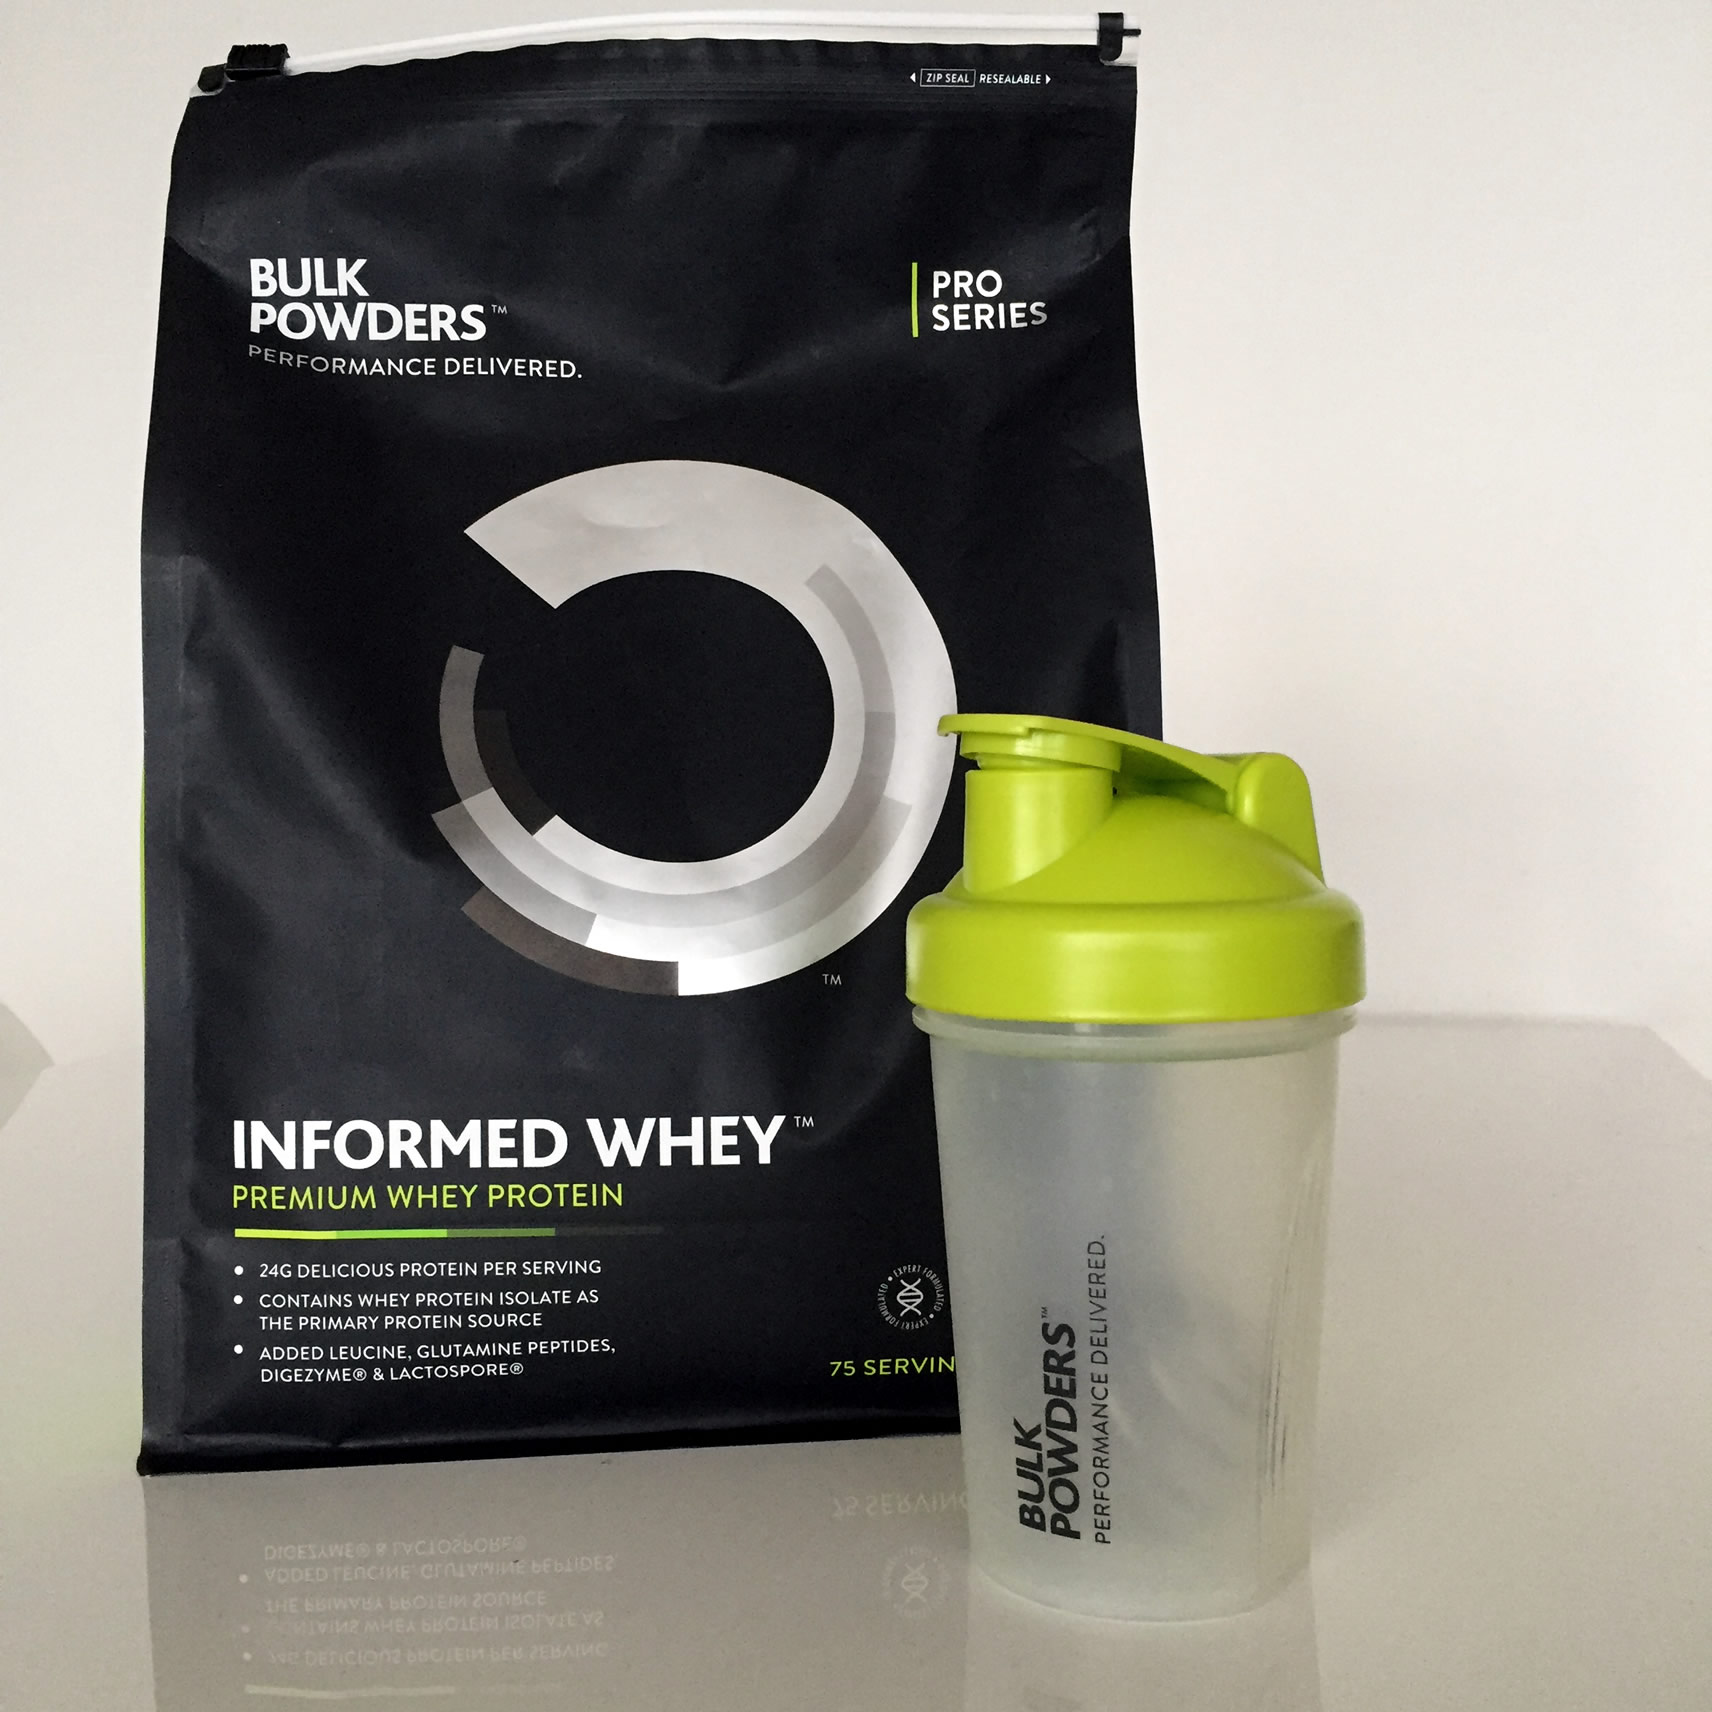 Use our Bulk Powders discount code and get a much needed hand with Bulk Powders' huge range of quality sports nutrition products. Whatever your sport, age or physical requirements, Bulk Powders is the best place to go with its enormous range of the most effective products in protein, sports nutrition, health & well being, weight loss and foods.